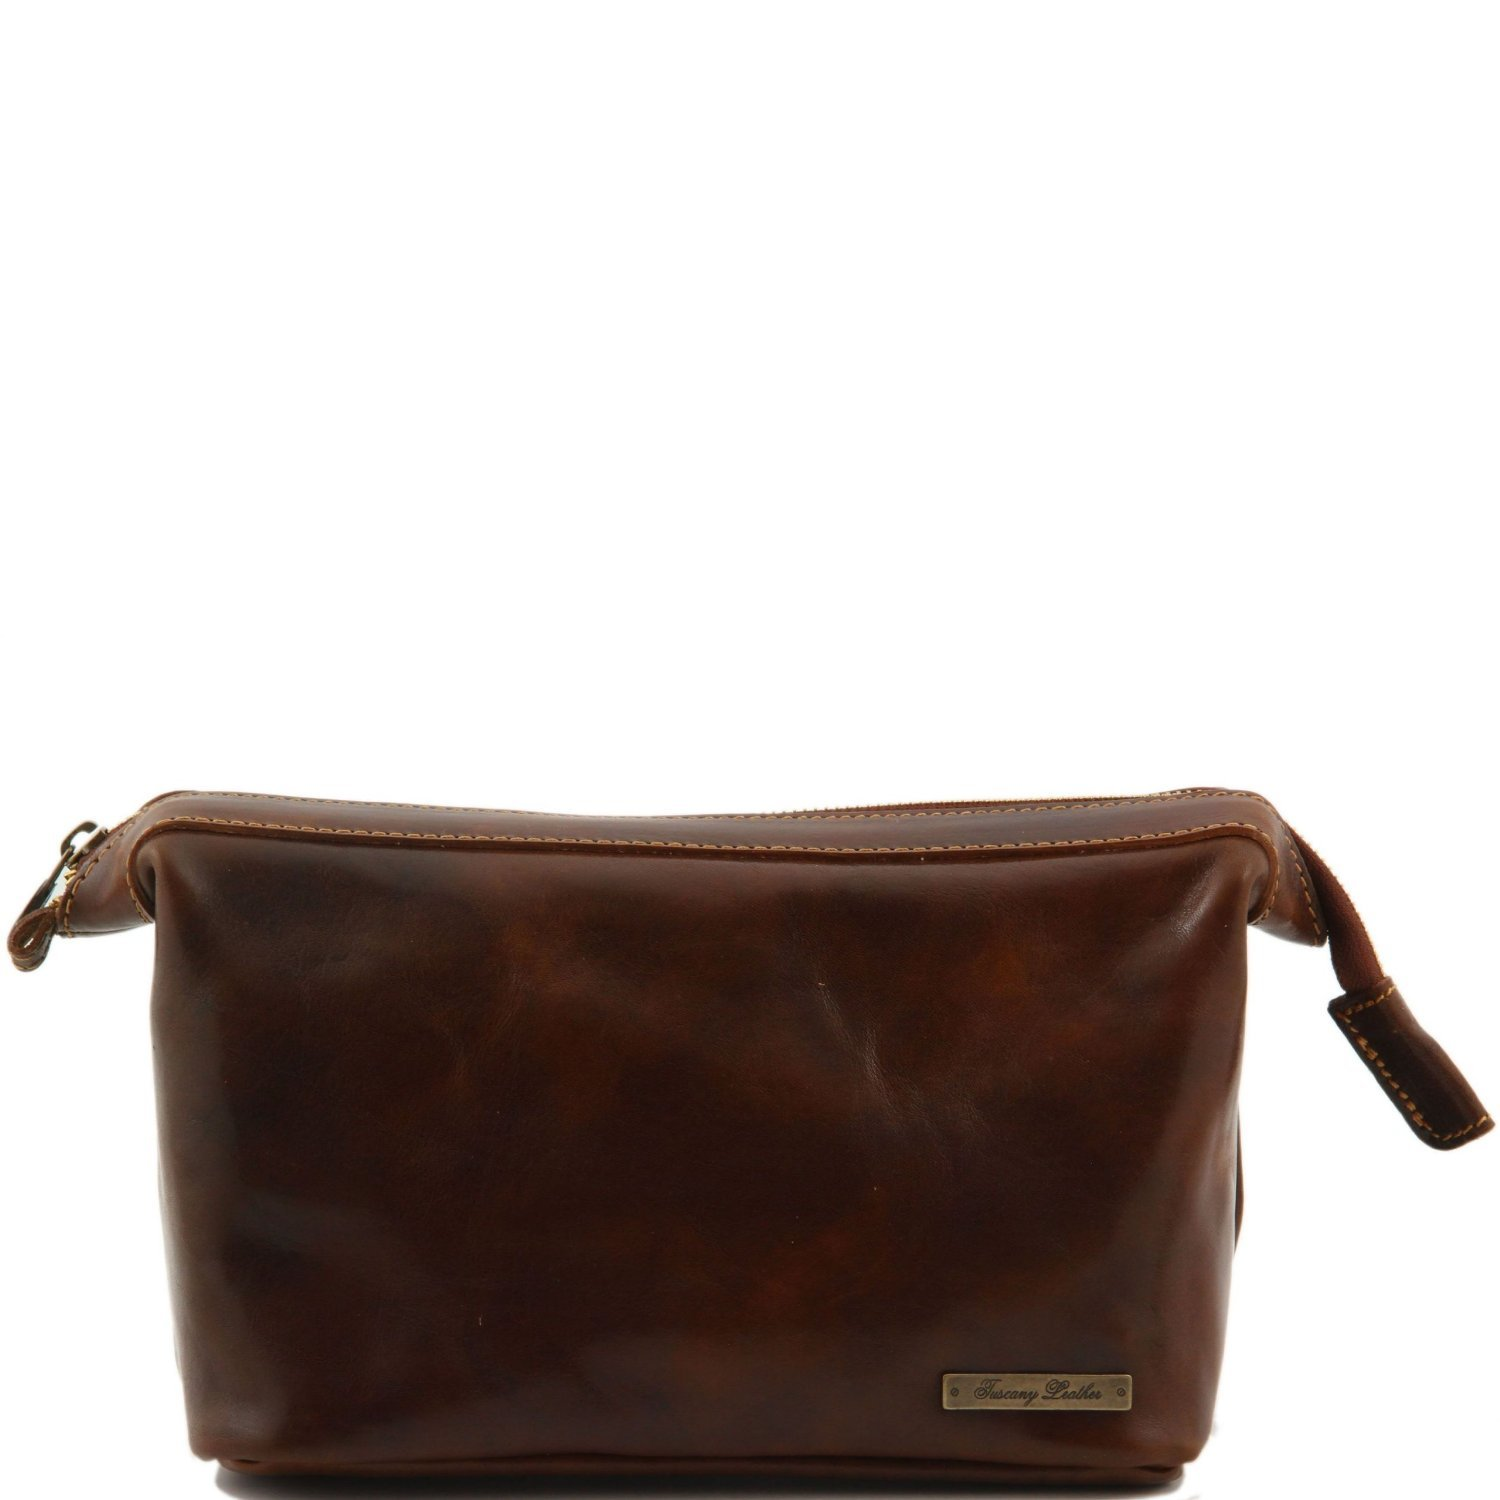 Ronny Tuscany Leather TL140979 Leather toilet bag